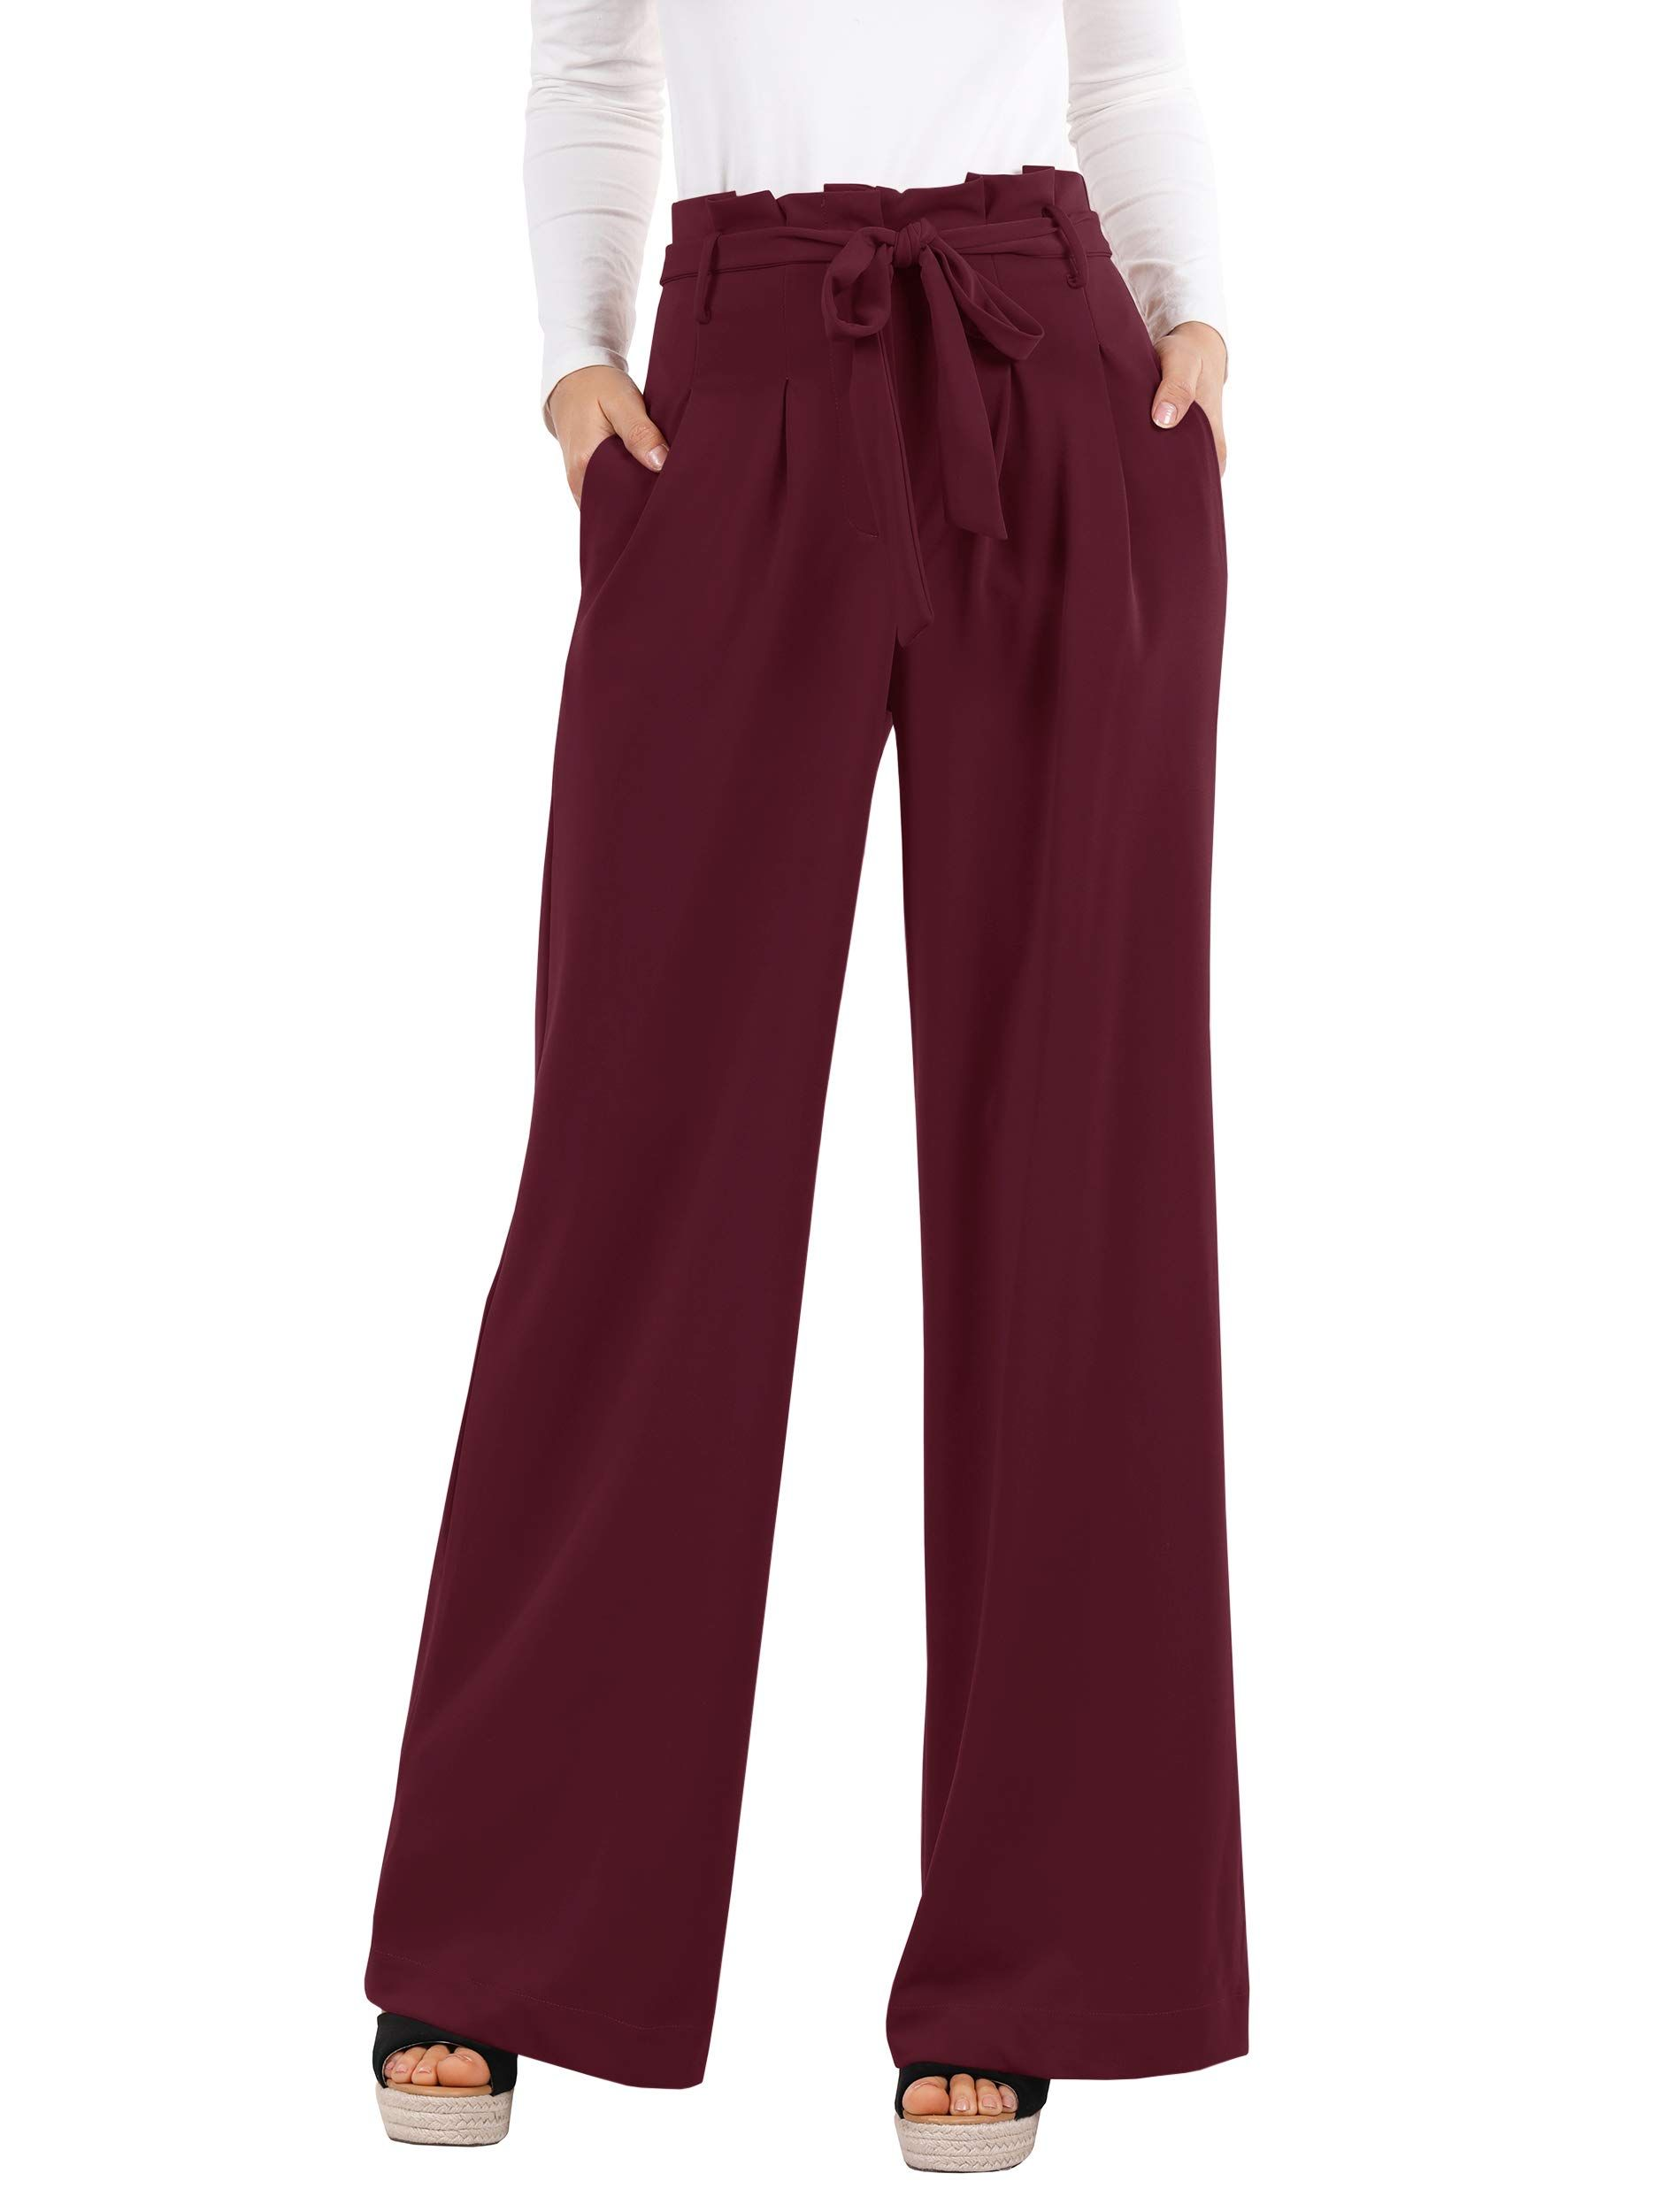 Photo of Womens Pants Wide Leg High Waisted Palazzo Pant Casual Loose Fit Long Pockets Tr…